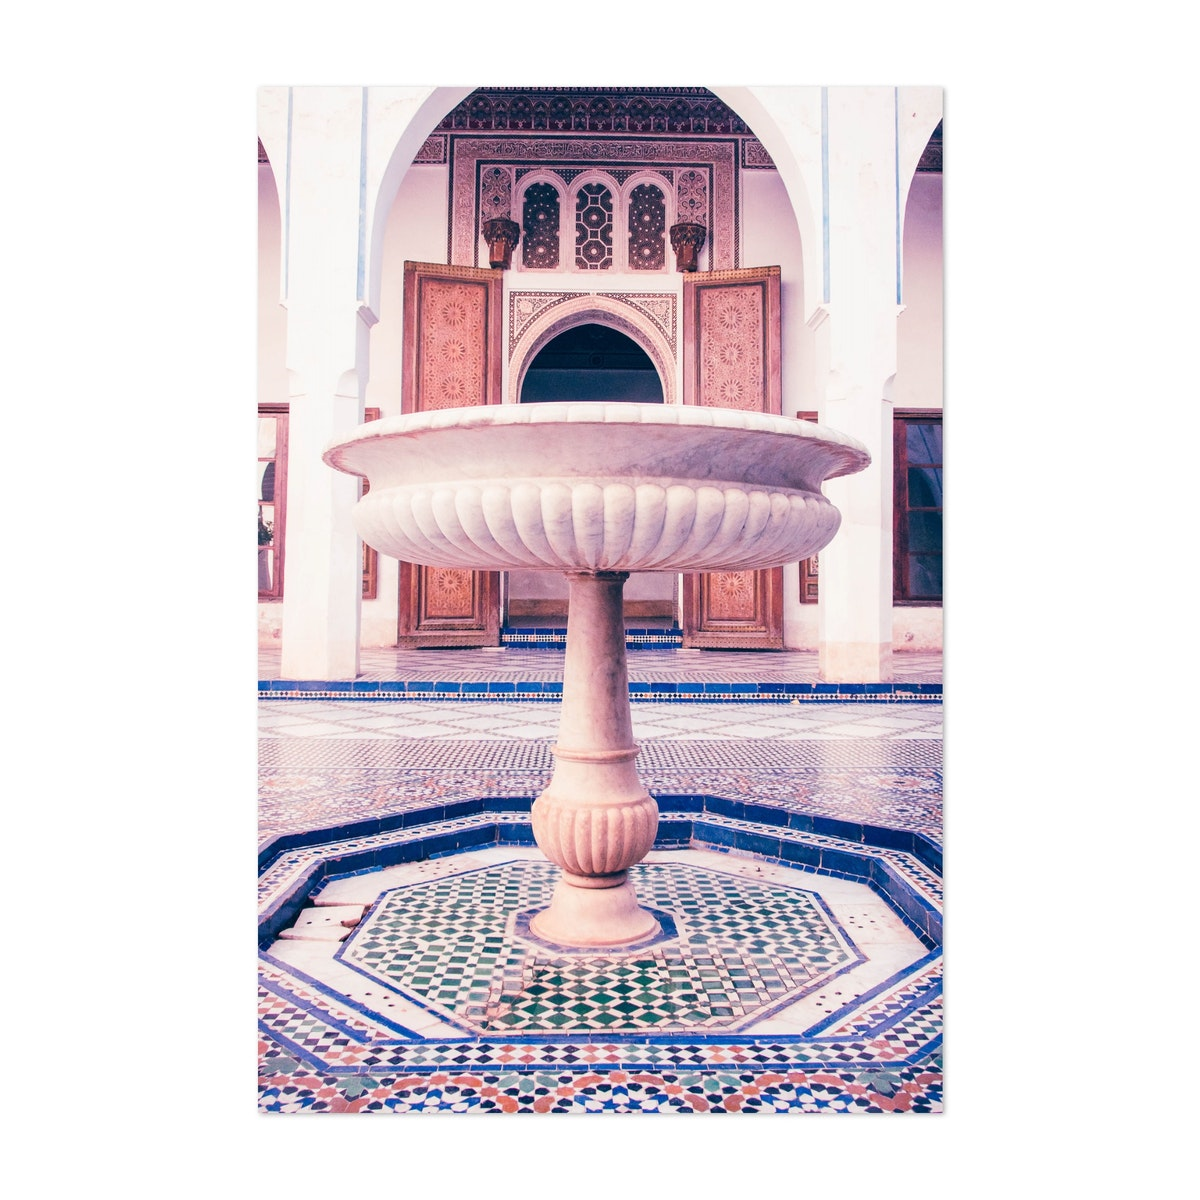 Fountain in a Tiled Moroccan Courtyard